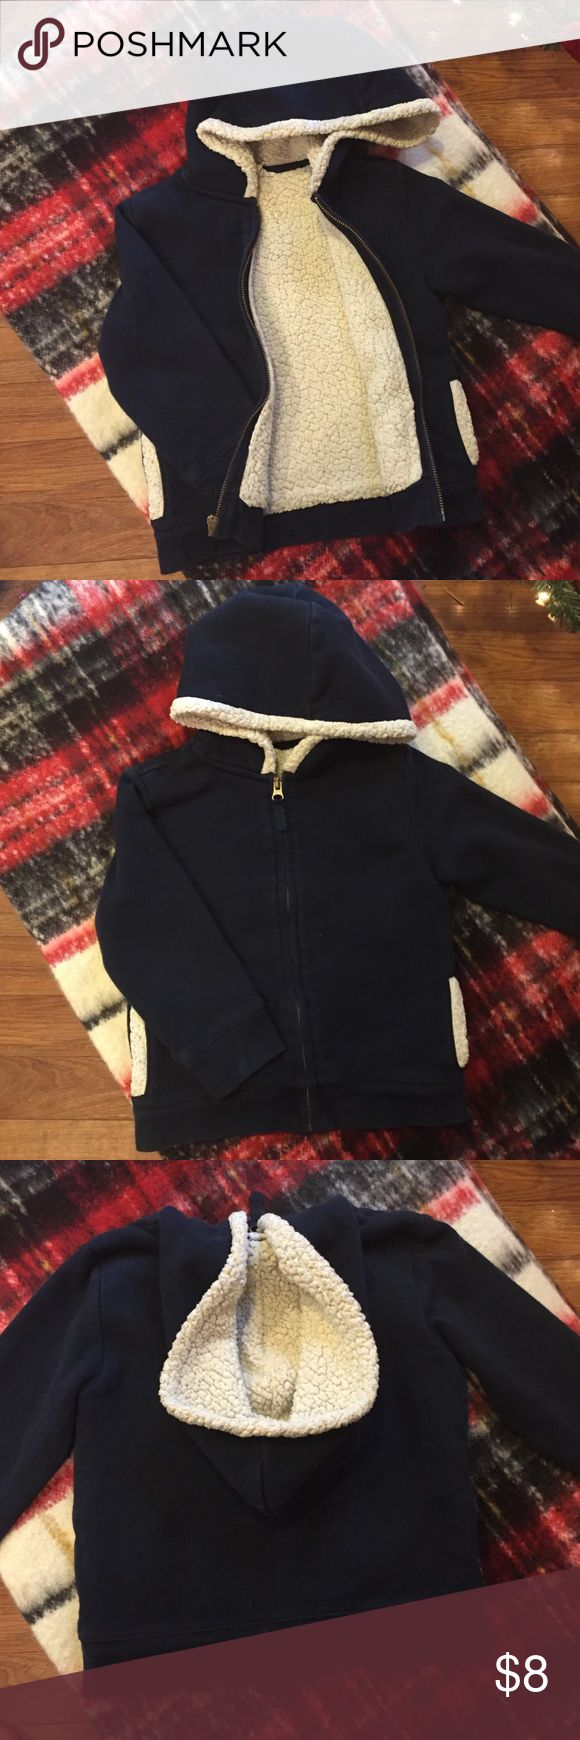 Lands end girls navy Sherpa lined hoodie small 4 Very nice lands end kids Sherpa lined hoodie for girls.  Navy with cream lining.  Gently used normal wash wear. No holes or stains.  Size small 4. Lands' End Shirts & Tops Sweatshirts & Hoodies